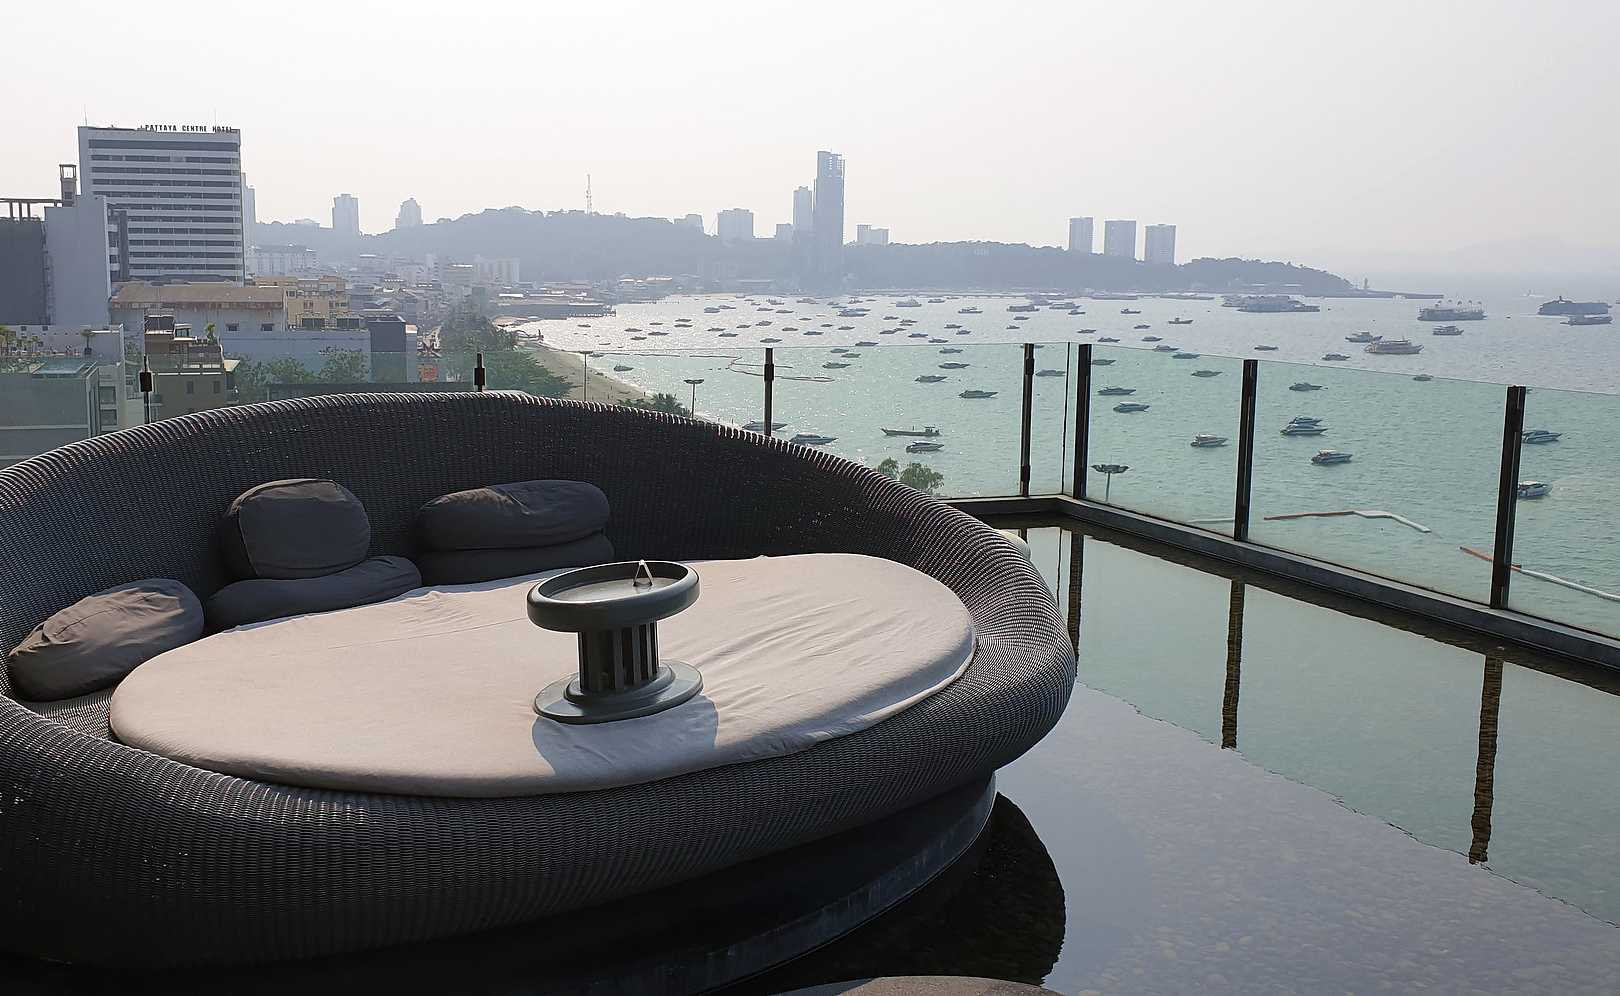 Lounge chair and pool on the roof of the Hilton Hotel in Pattaya